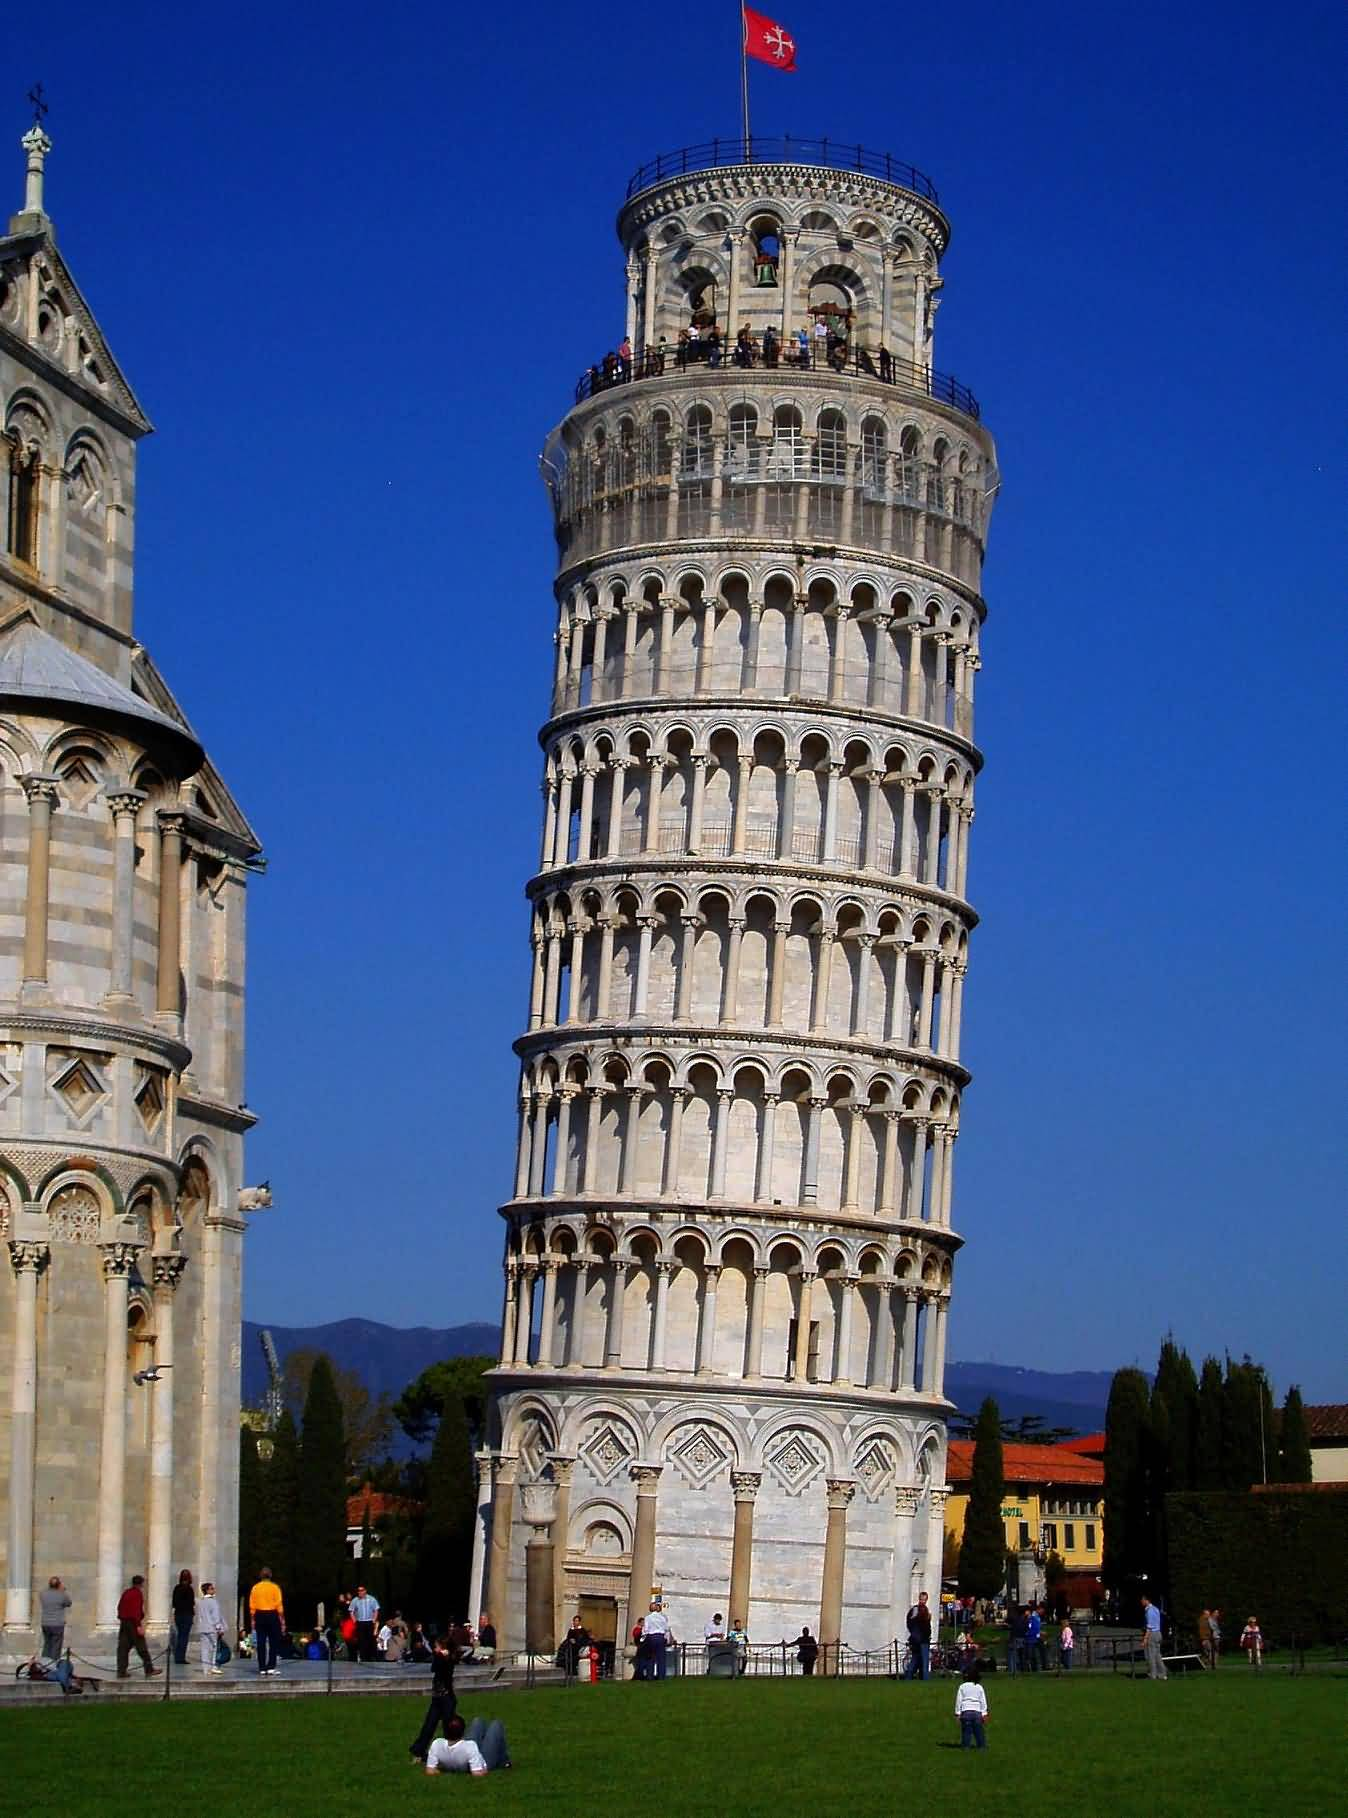 15 Incredible Inside Pictures And Photos Of The Leaning